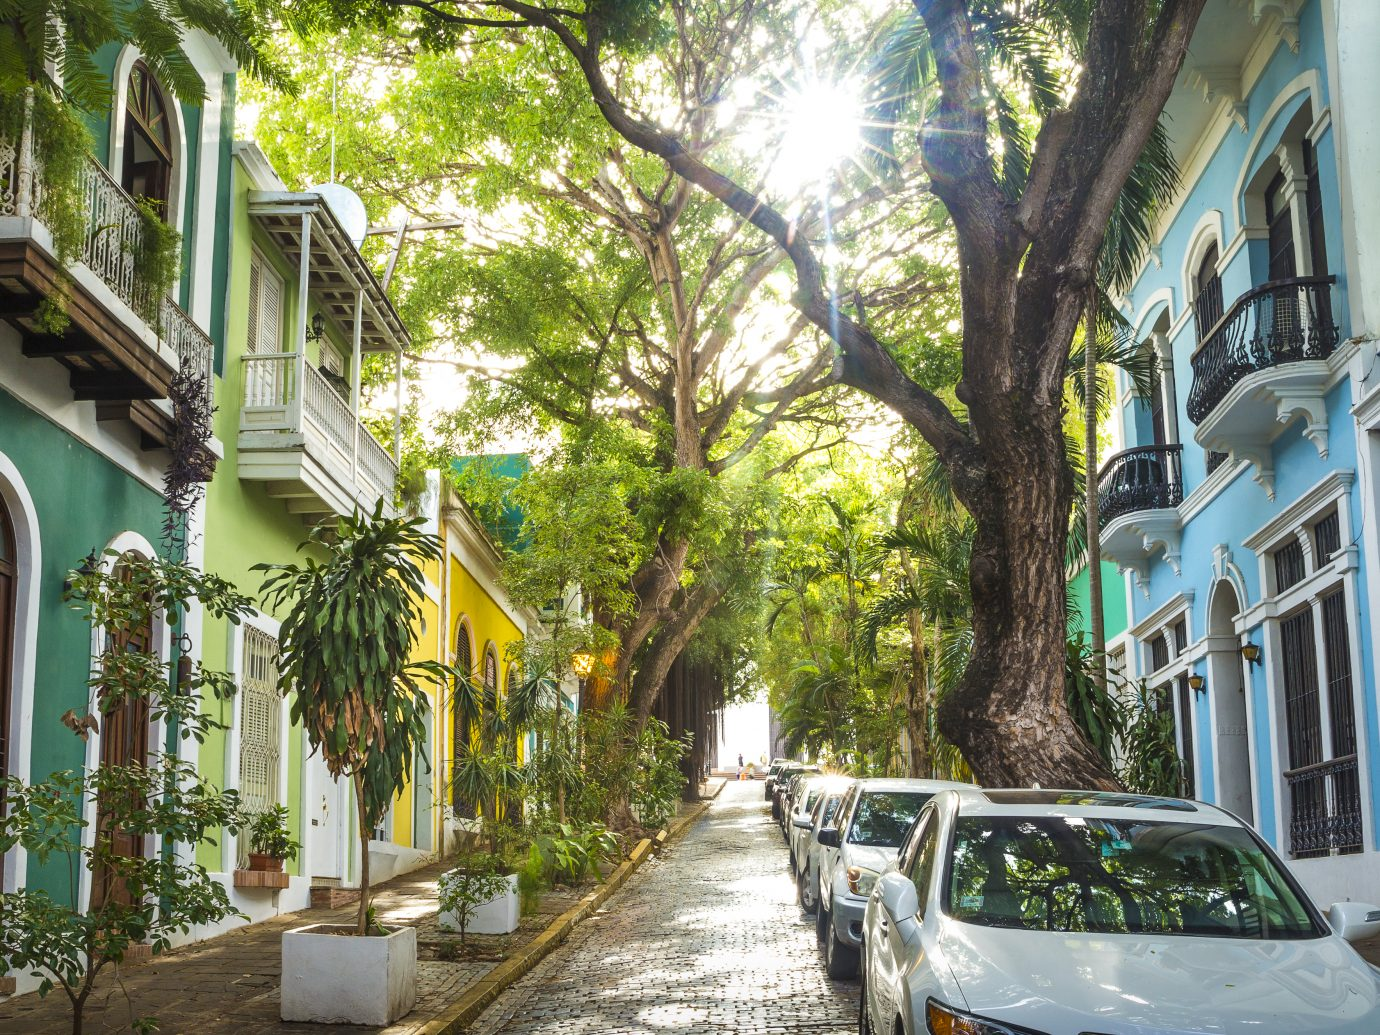 Panoramic photo of Old San Juan street in Puerto Rico